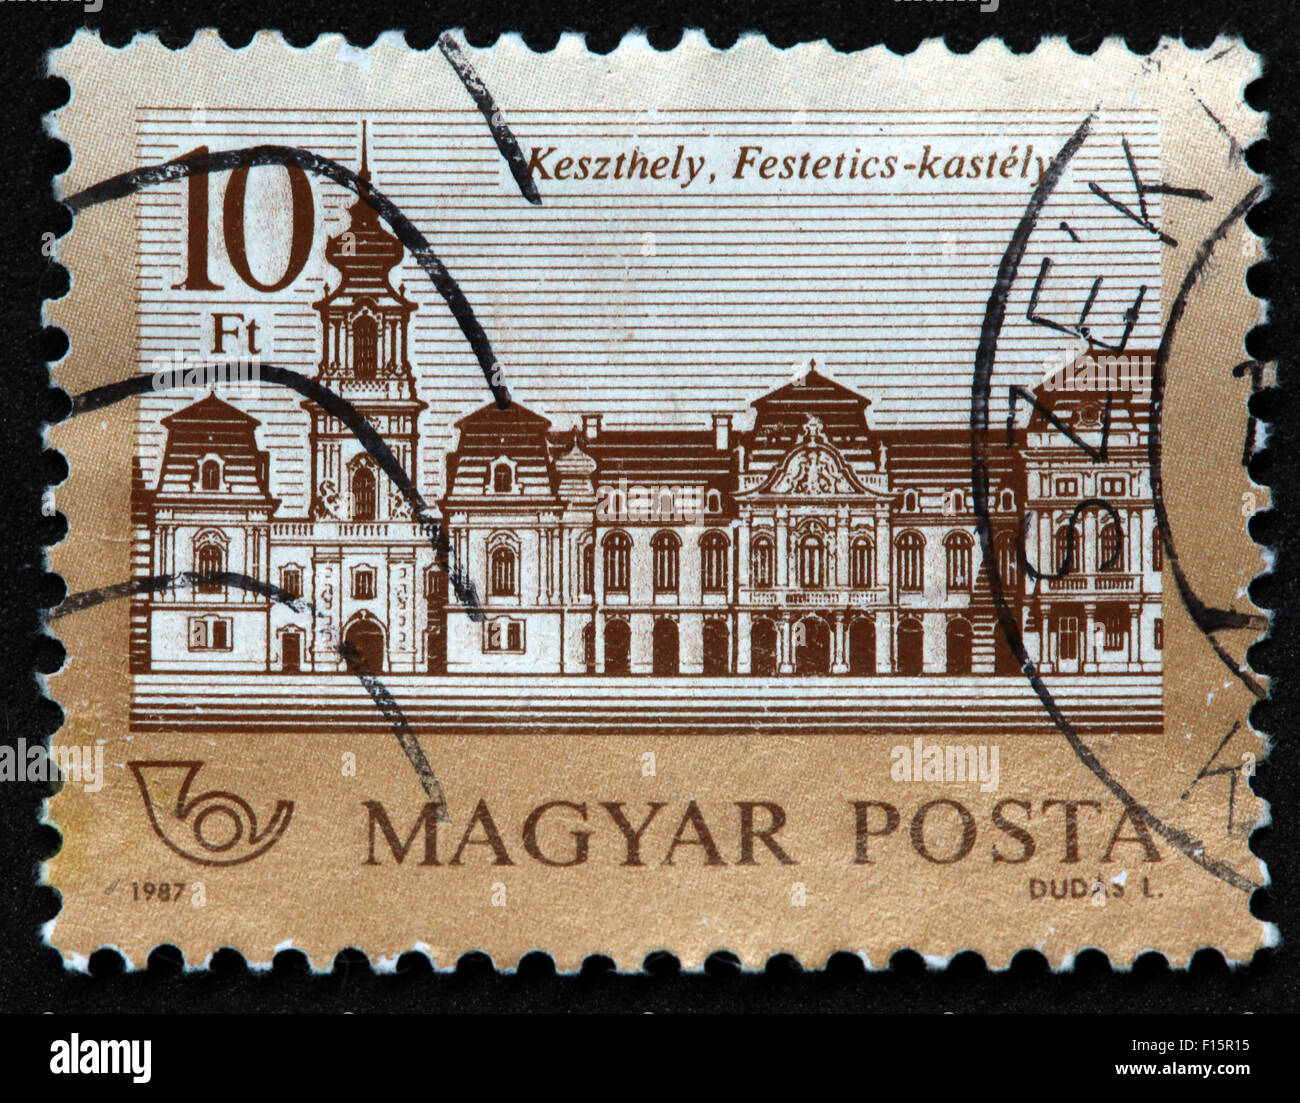 International Post,star,Used and Postmarked,Used,and,postmarked,perforated,stamp,Used,and,postmarked,Stamp,post,posting,mail,hobby,perforation,mark,postage,stamp,print,stamp,cancelled,stamp,payment,correspondence,postman,collection,collector,phila,USSR,Soviet,Bloc,Block,East,Eastern,Europe,Hungary,Keszthely Festetics-kastely SZE SZEK,brown,Hungarian,Gotonysmith,post,posting,mail,hobby,perforation,mark,postage,stamp,print,stamp,cancelled,canceled,stamp,payment,correspondence,postman,collection,collector,philately,philatelist,letter,price,history,retro,Australian,Vintage,delivery,date,relationship,communication,Oz,Australia,DownUnder,classic rare unique Austrailian financial,investment,invest,value,British,empire,nation,canceled,printed on black background,close-up,closeup,close,up,sent,send,philately,mailing,shipping,postoffice,office,isolated,circa,special,colour,color,postmarked,marked,airmail,aged,antique,retro,cutting,historic,old,stamps,collection,stamp collection,album,Timbre,Sello,Stempel,Selo,Buy Pictures of,Buy Images Of,Down Under,Black background